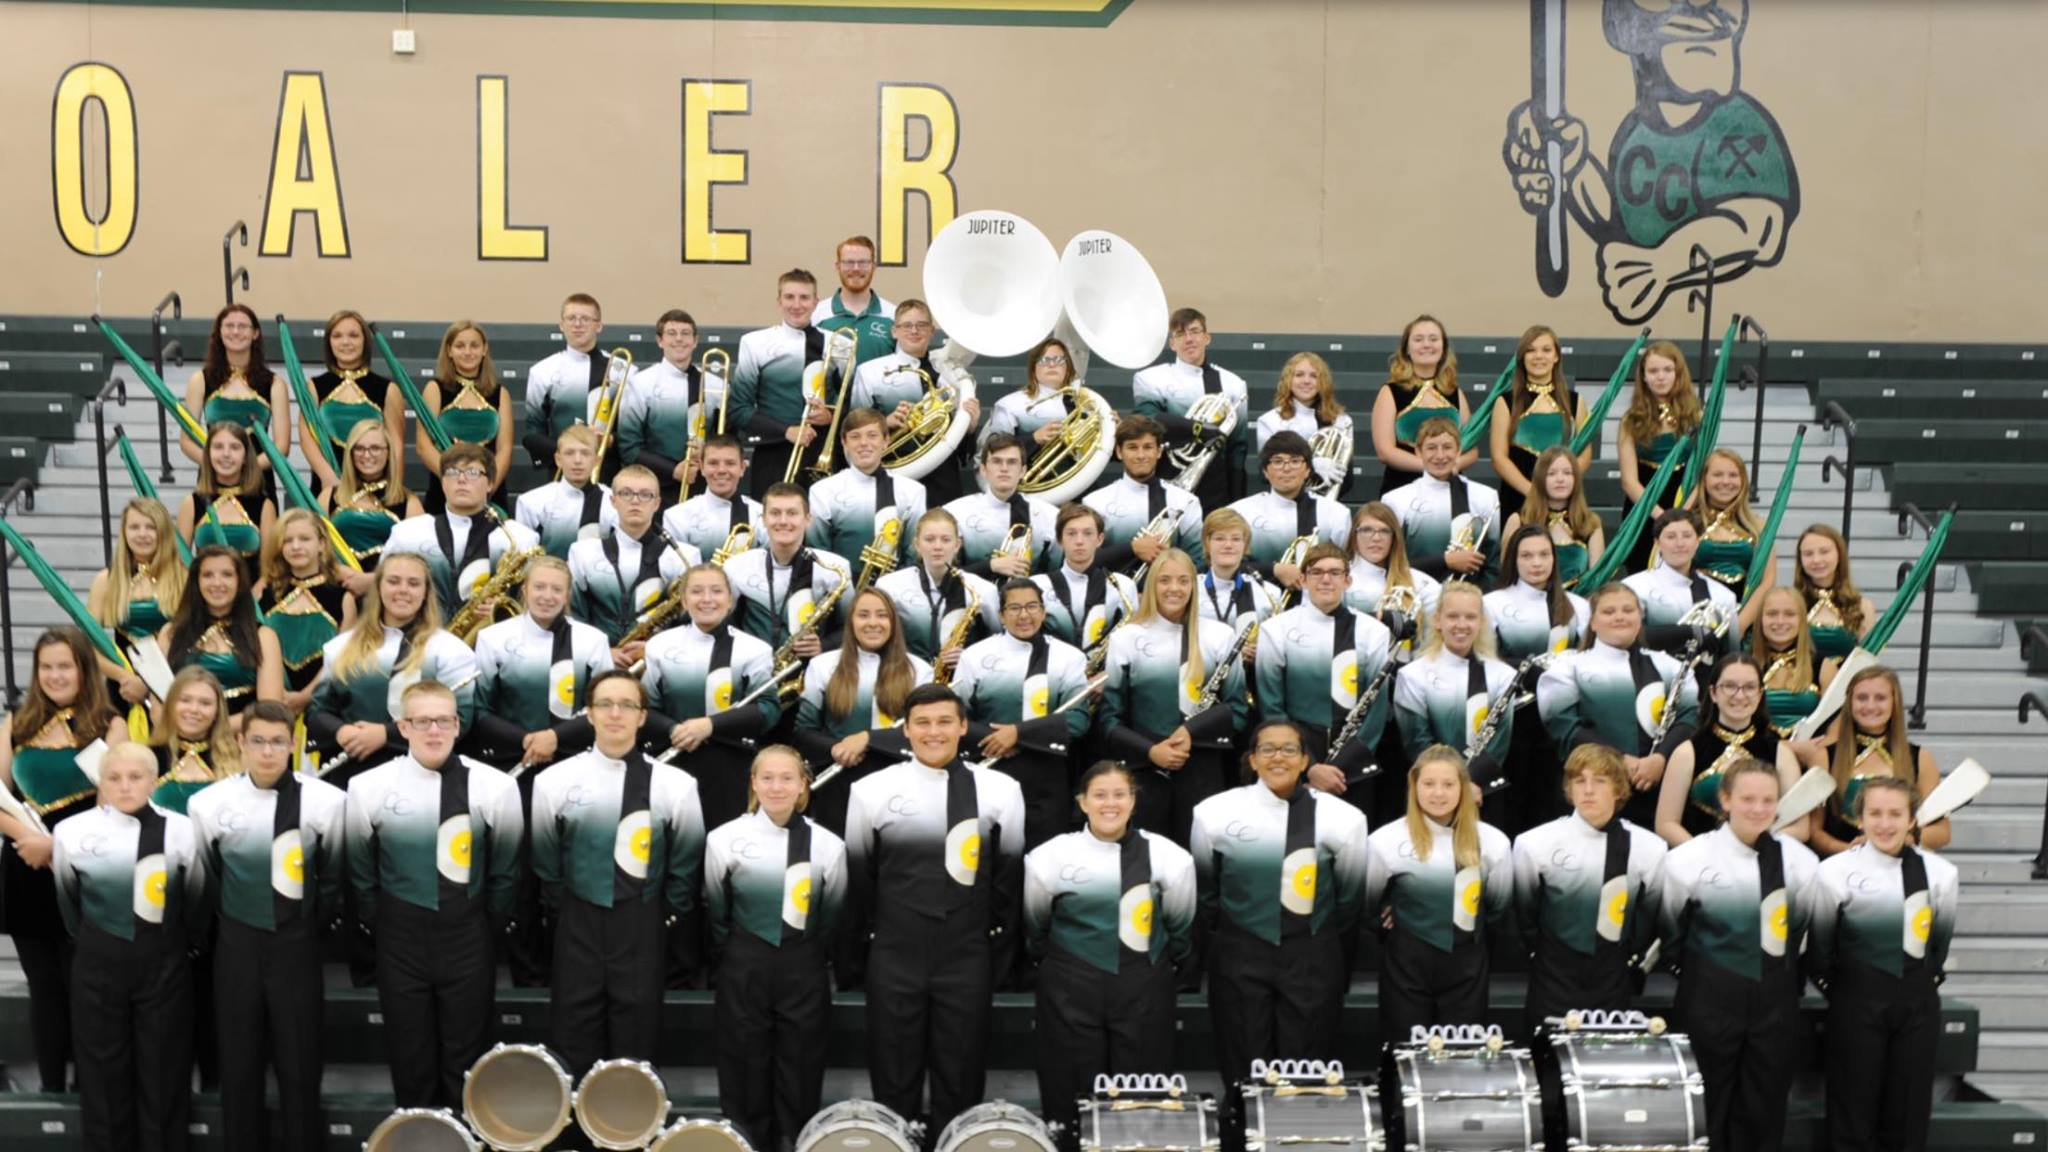 2017 Marching Coalers